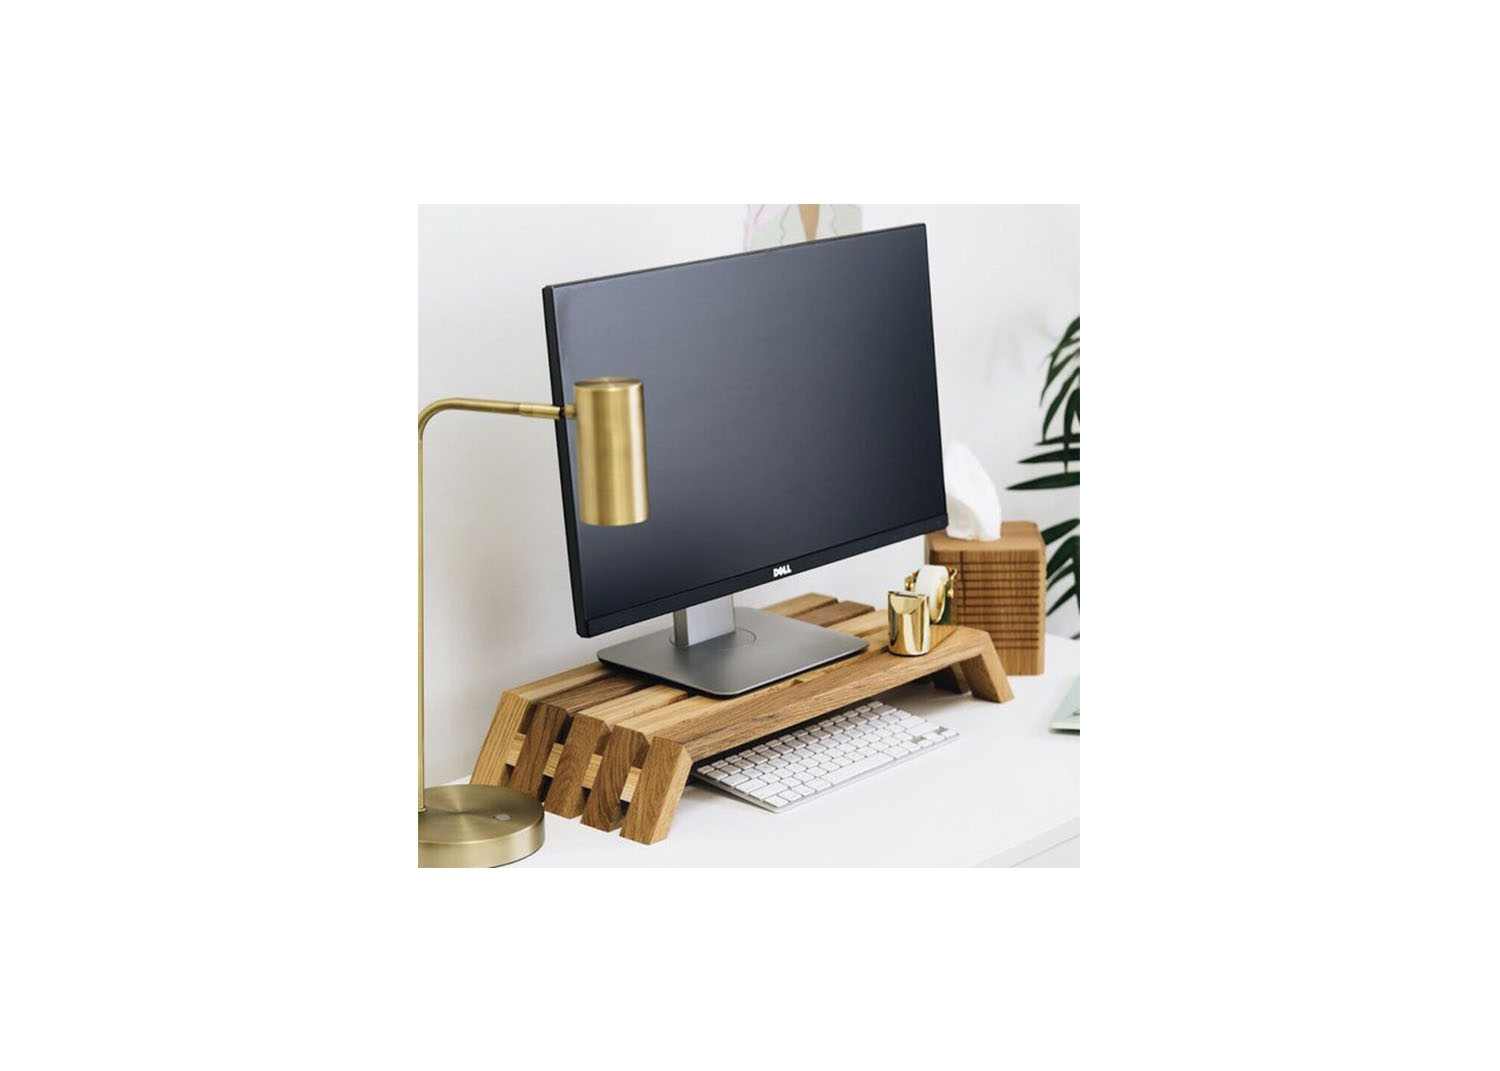 Wood Monitor Stand - $79